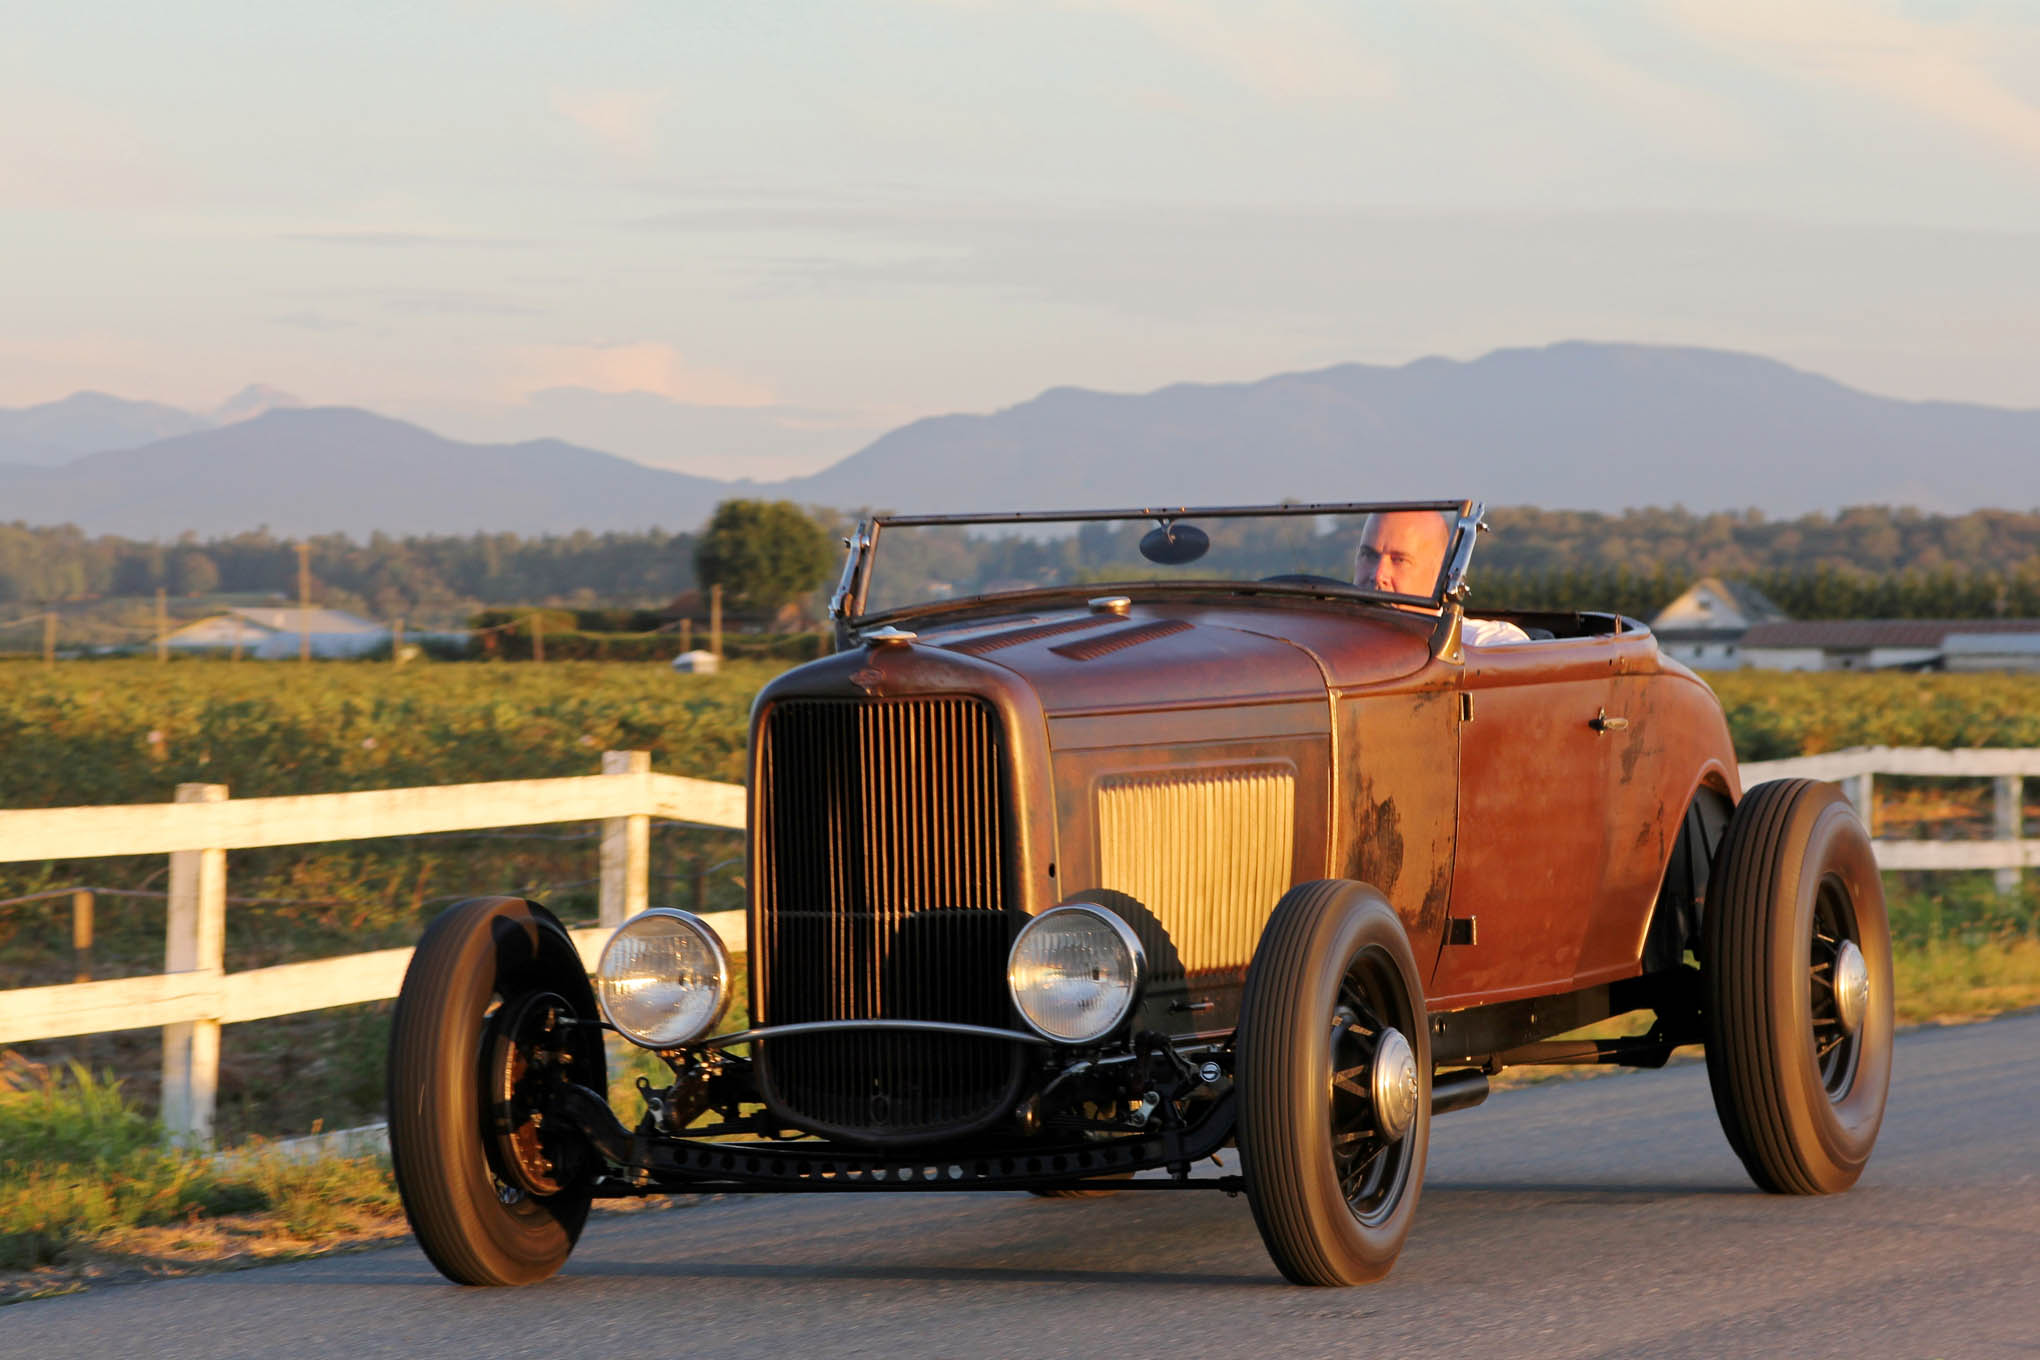 The patchy paintjob, low slung Deuce headlight bar, and angled windshield, chopped 3-1/2 inches, contribute to the roadster's sinister attitude. The '30 body, from Washington State, proved in decent shape, simply requiring lower patch panels and fresh floor pans.